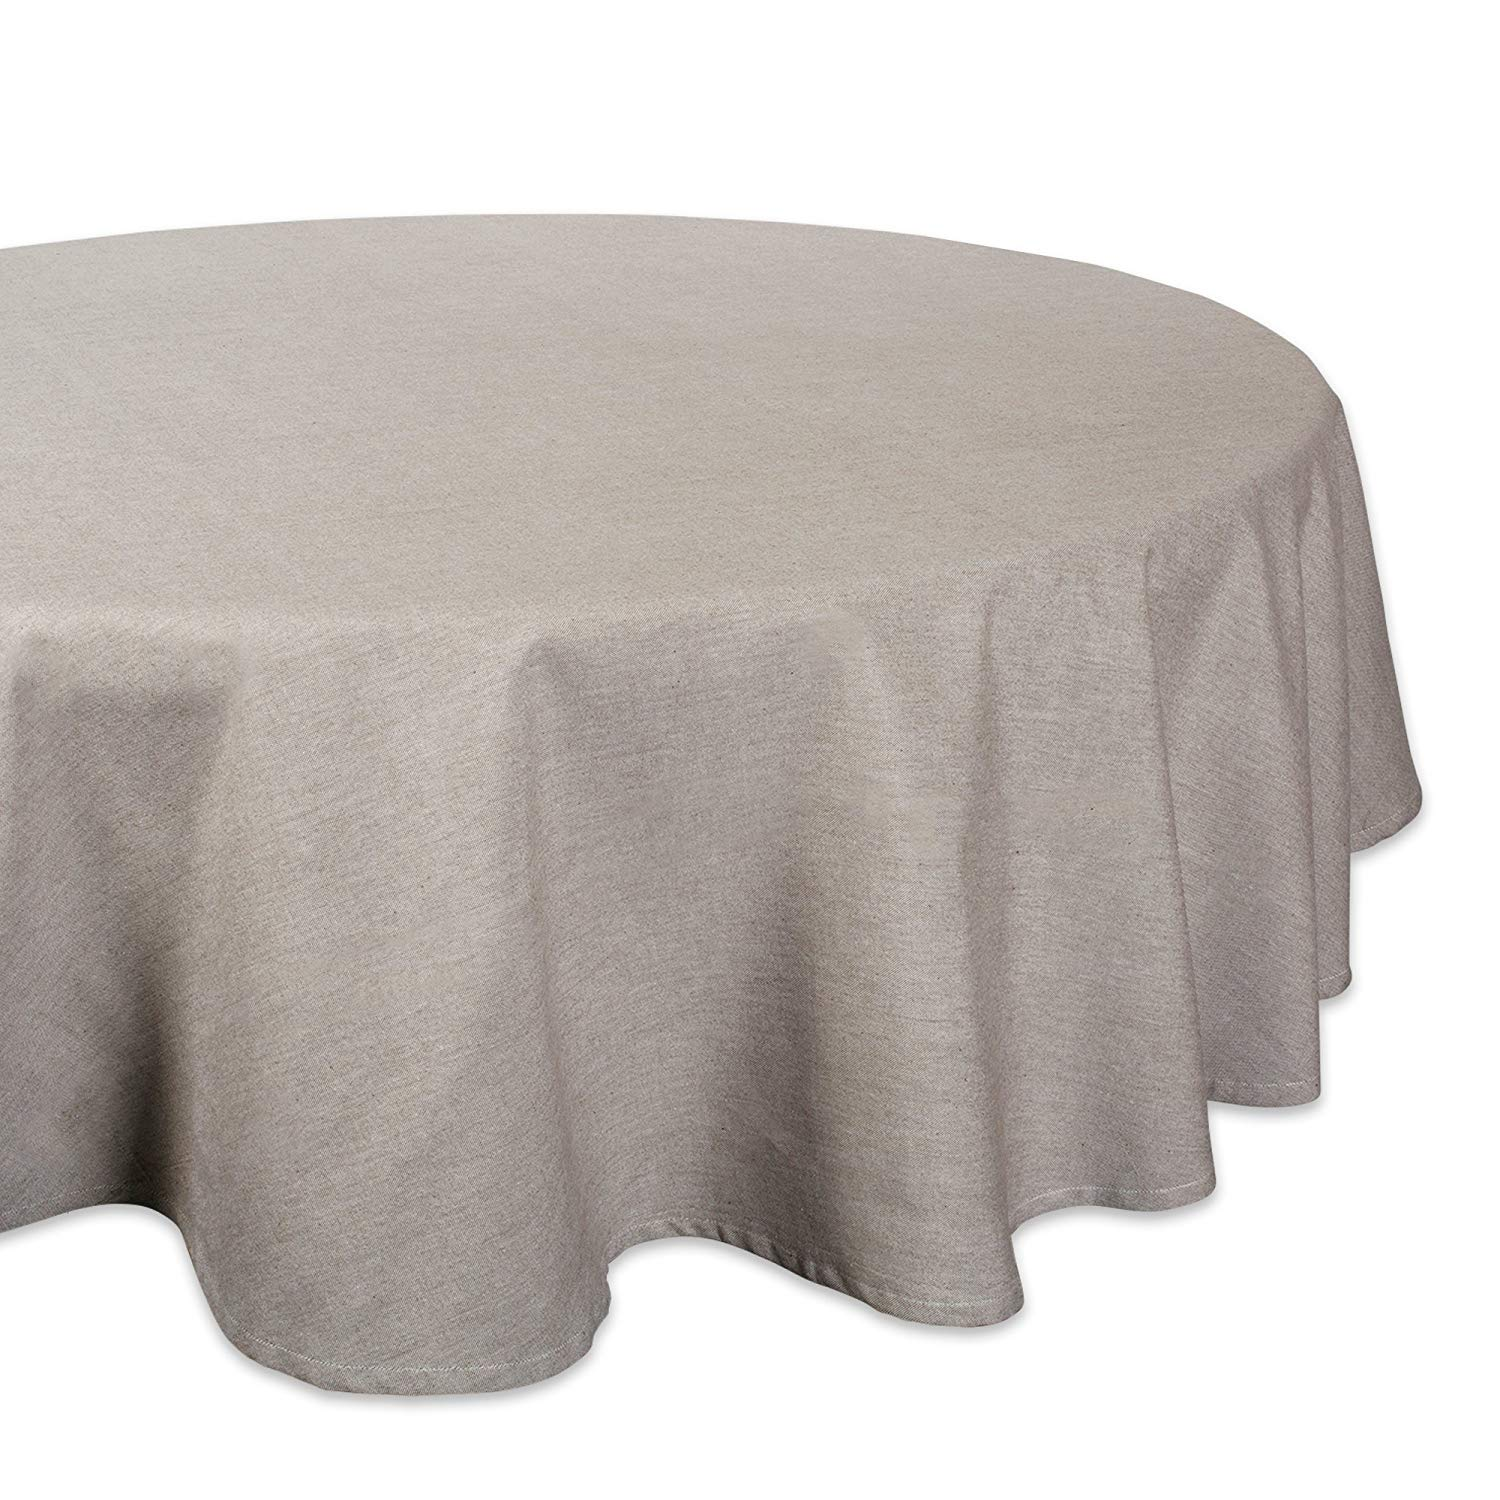 dii stone solid chambray tablecloth round accent home kitchen modern furniture runner rugs farmhouse door high back dining room chairs industrial small table topper patterns